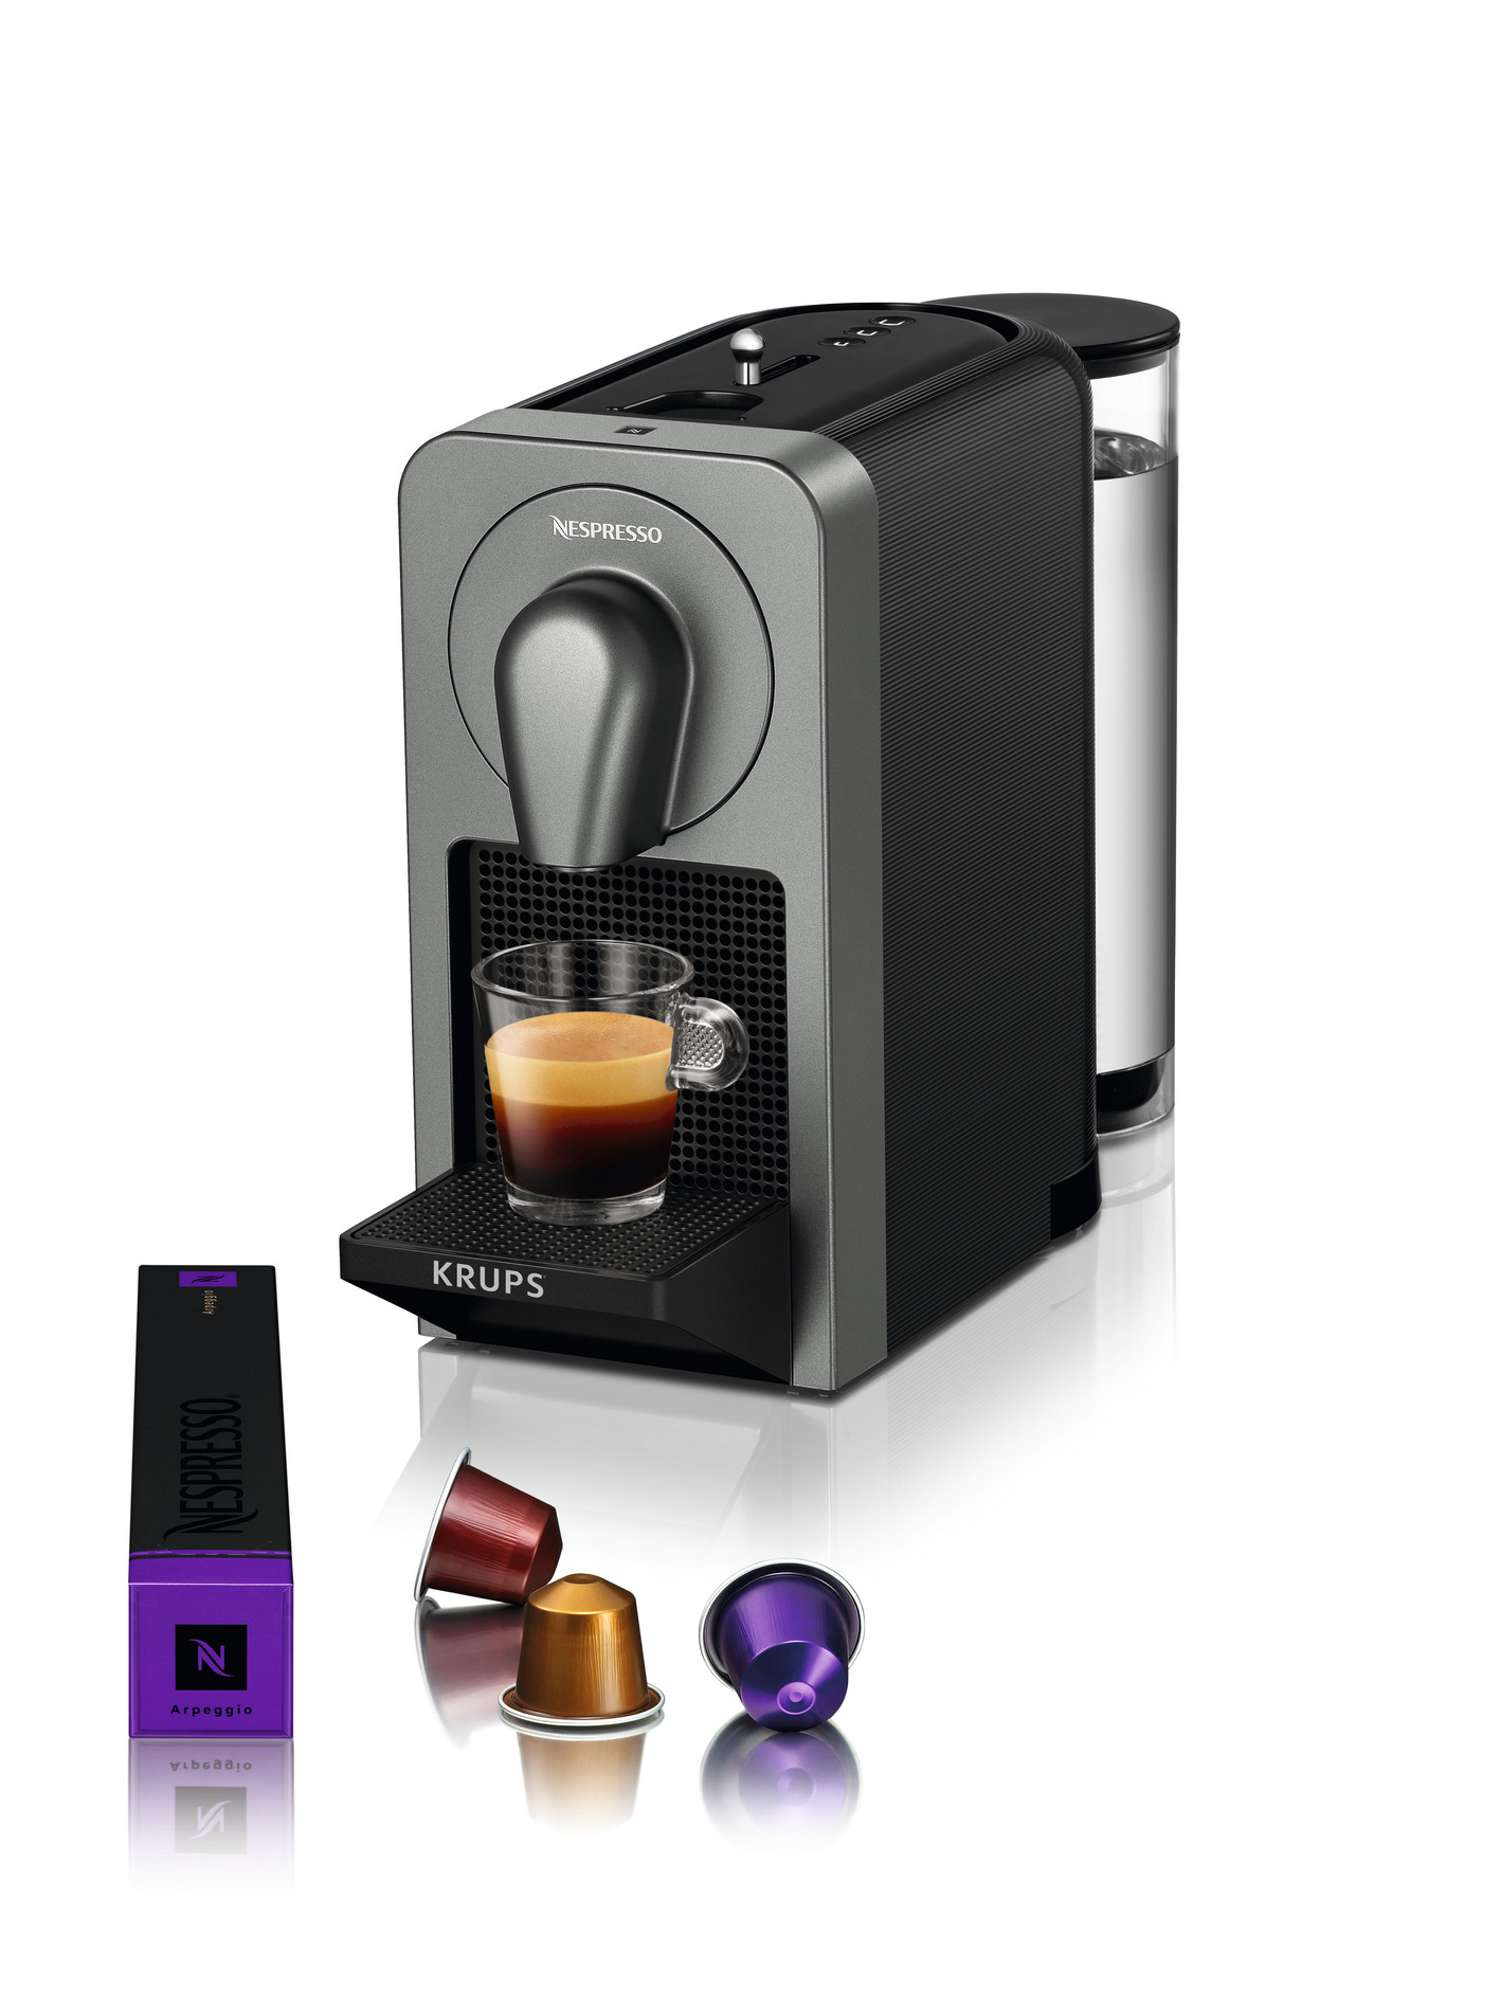 Nespresso Machine Offers Nespresso Machines Shop Coffee Makers House Of Fraser